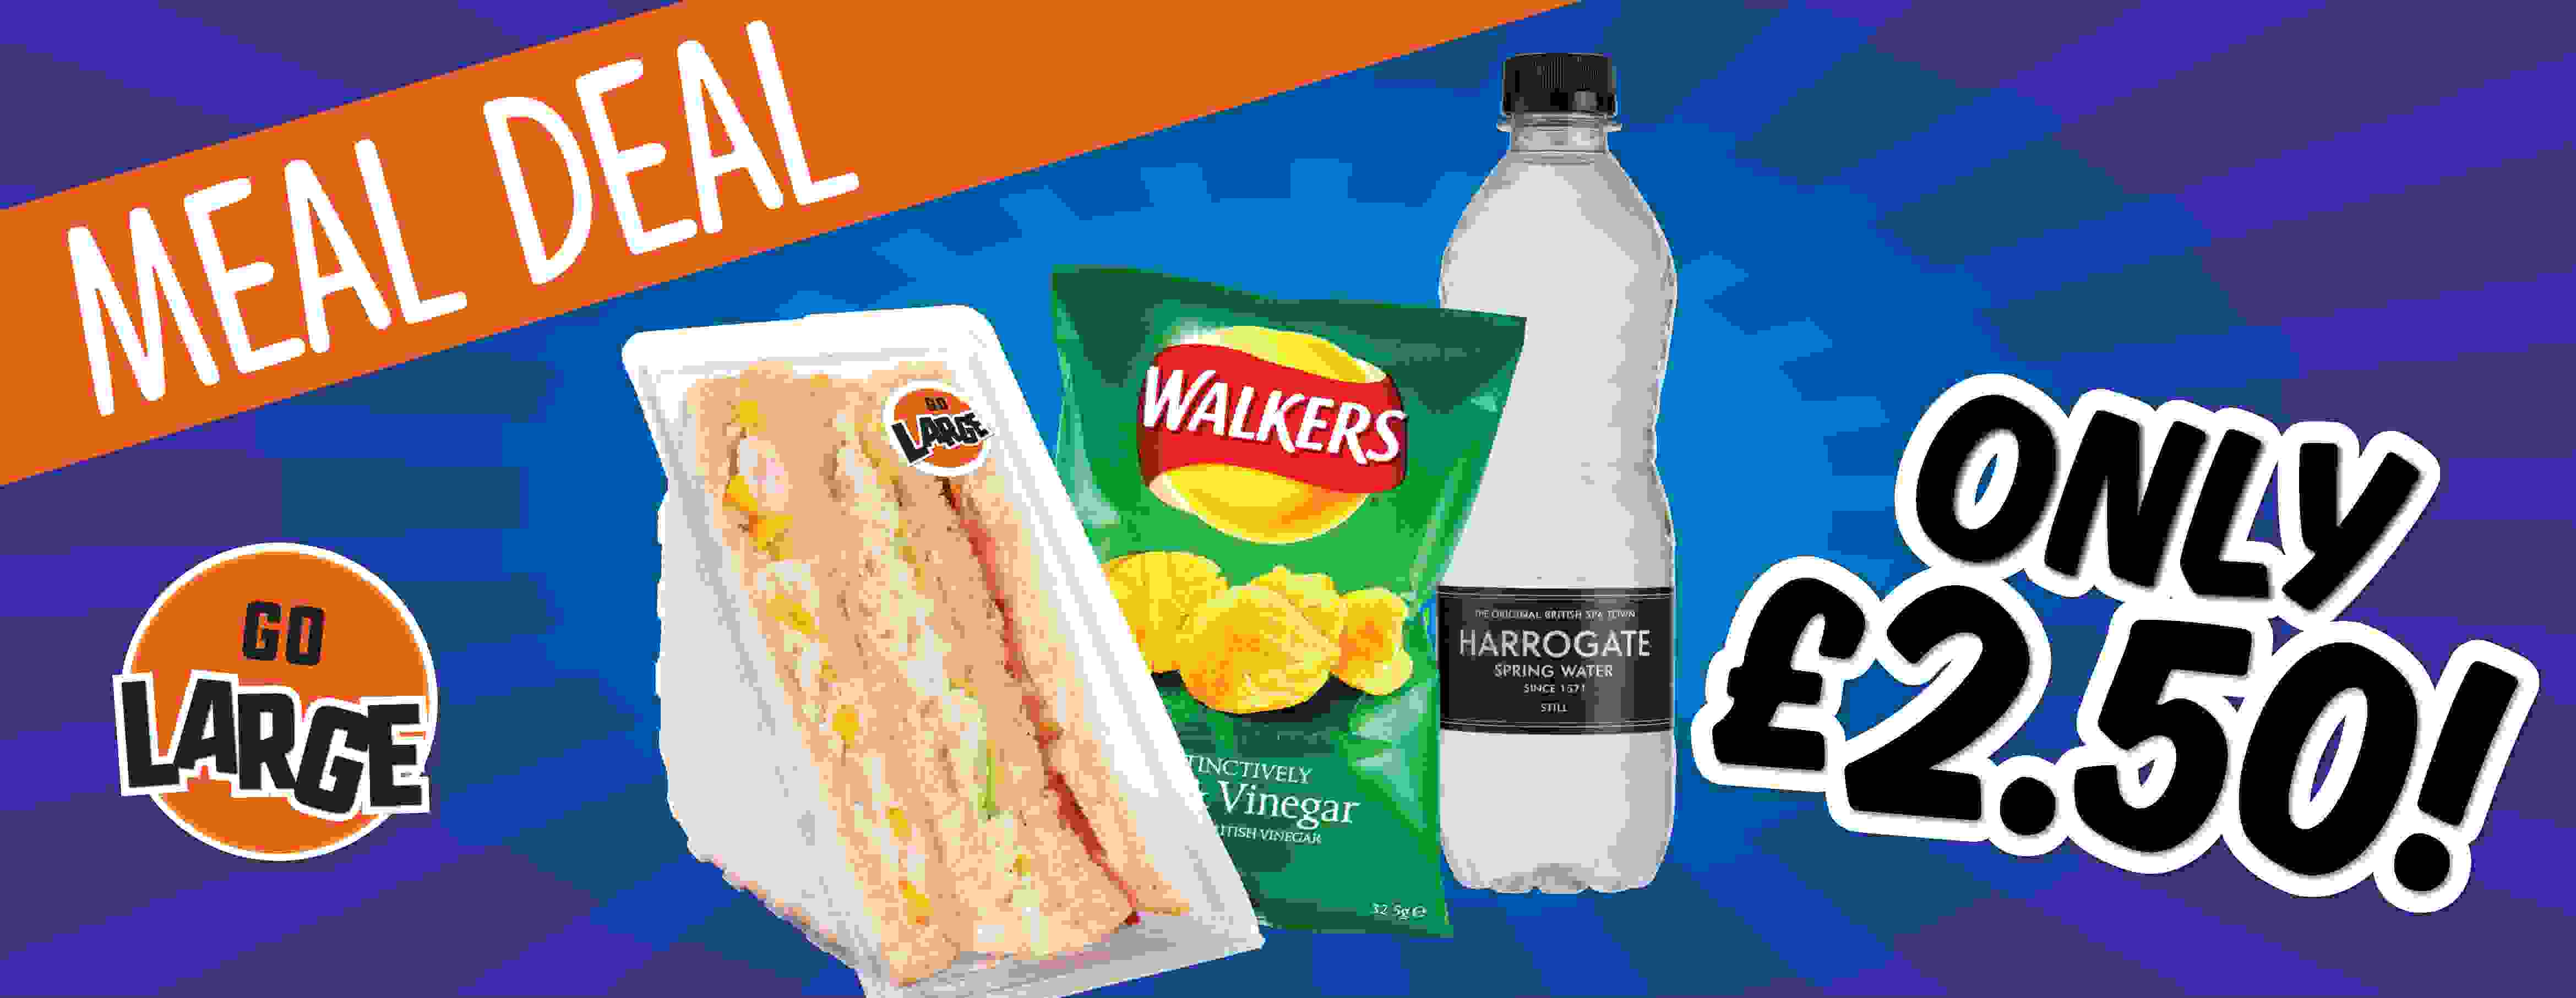 meal deal web banner-01.png